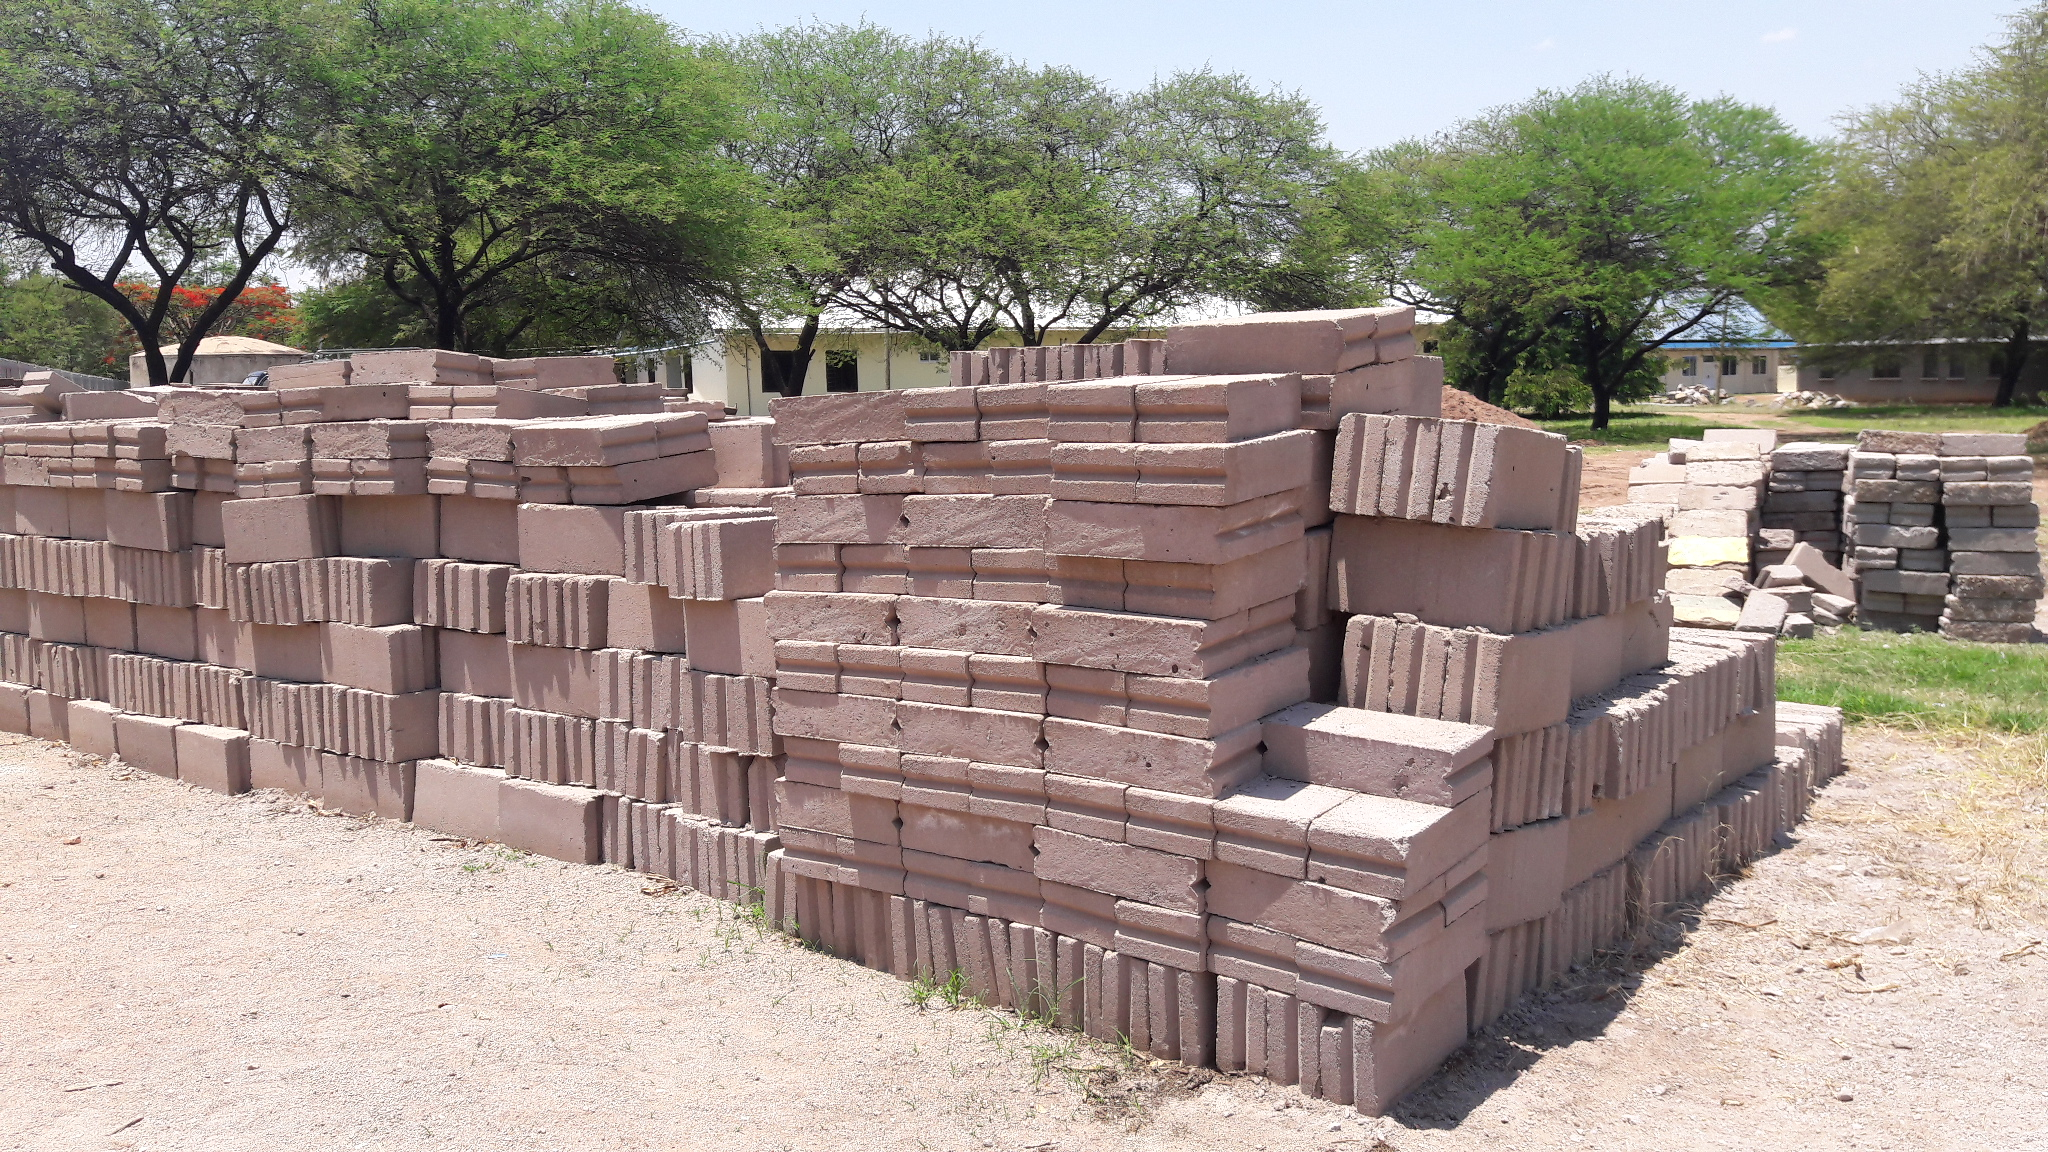 Blocks for the Chaplains home (Father Paul)